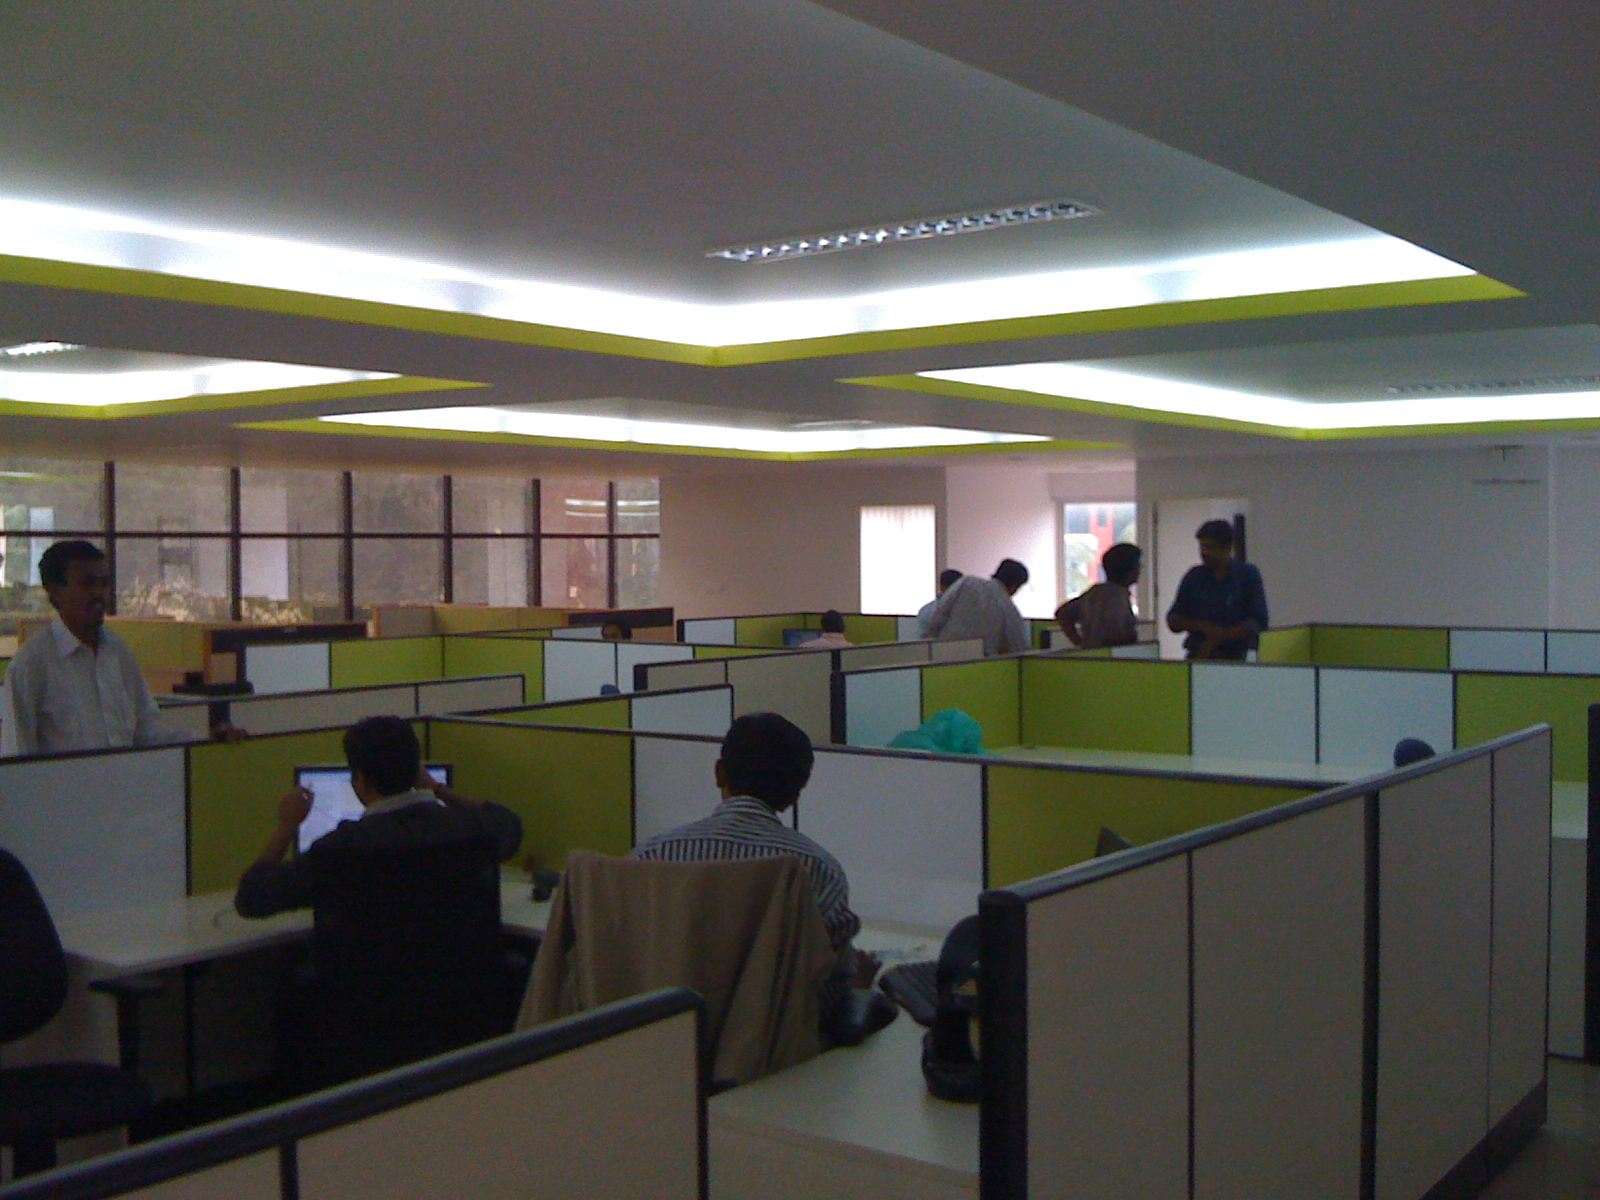 Here is a quick snap from my iPhone of the new GreenPrint office in Bangalore. Check out the awesome colour scheme and lighting.